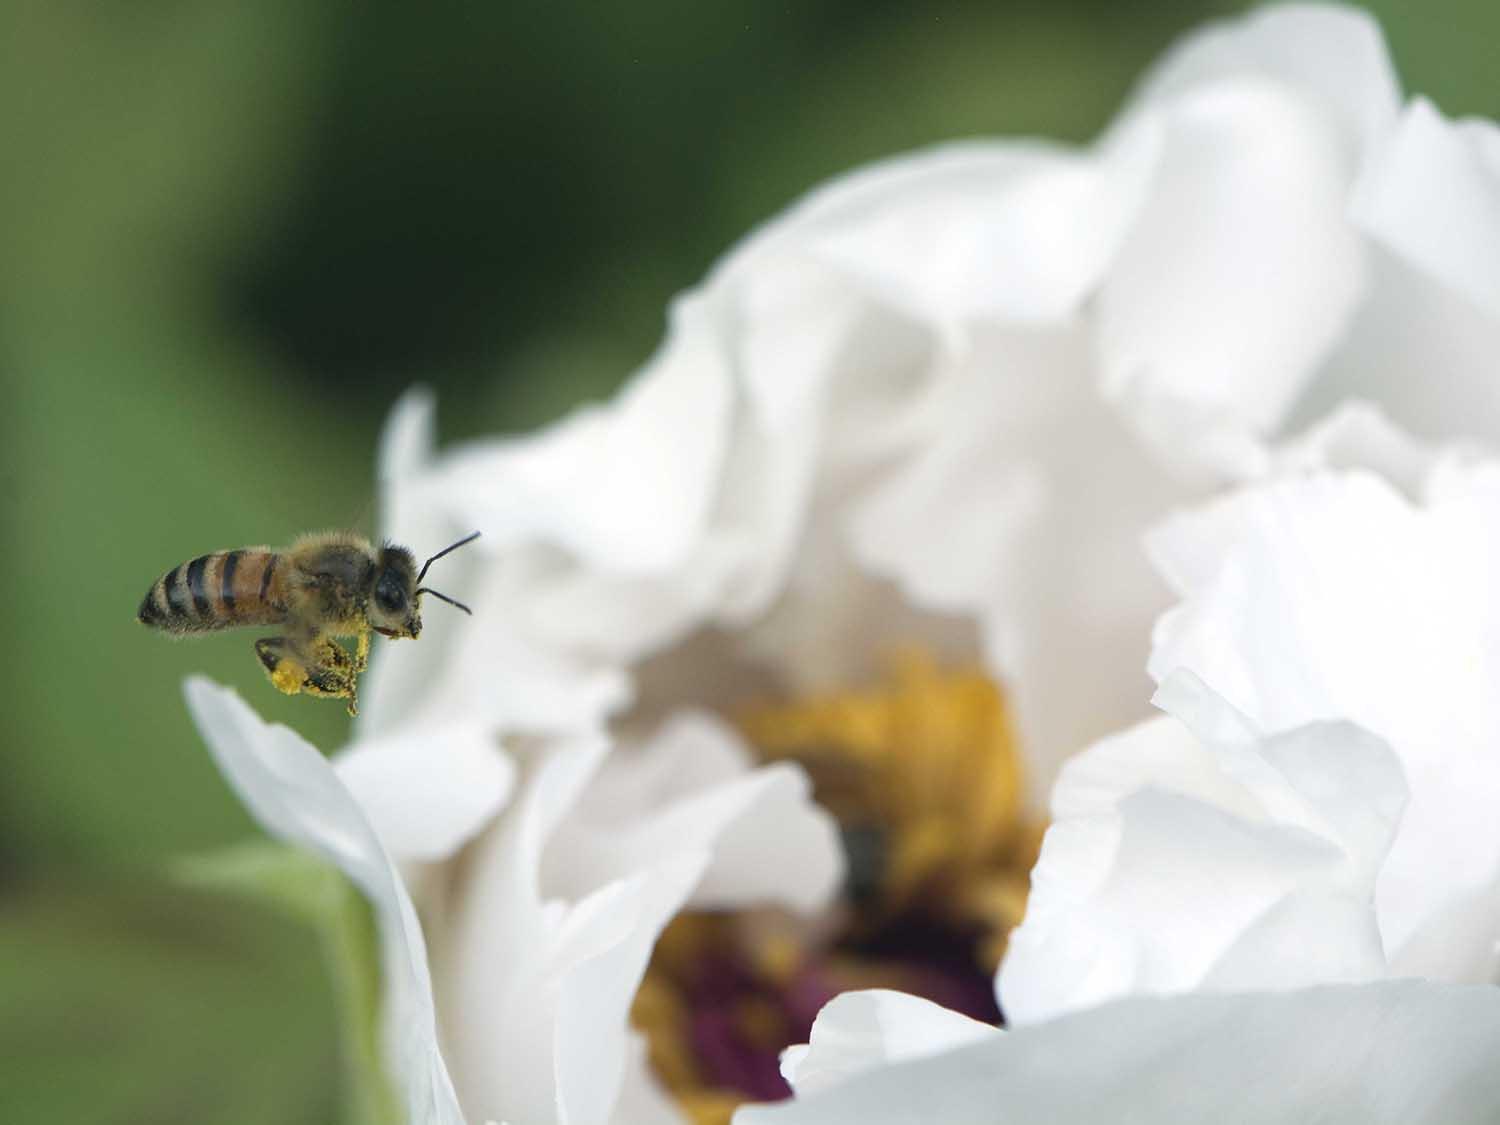 A bee approaches a flower